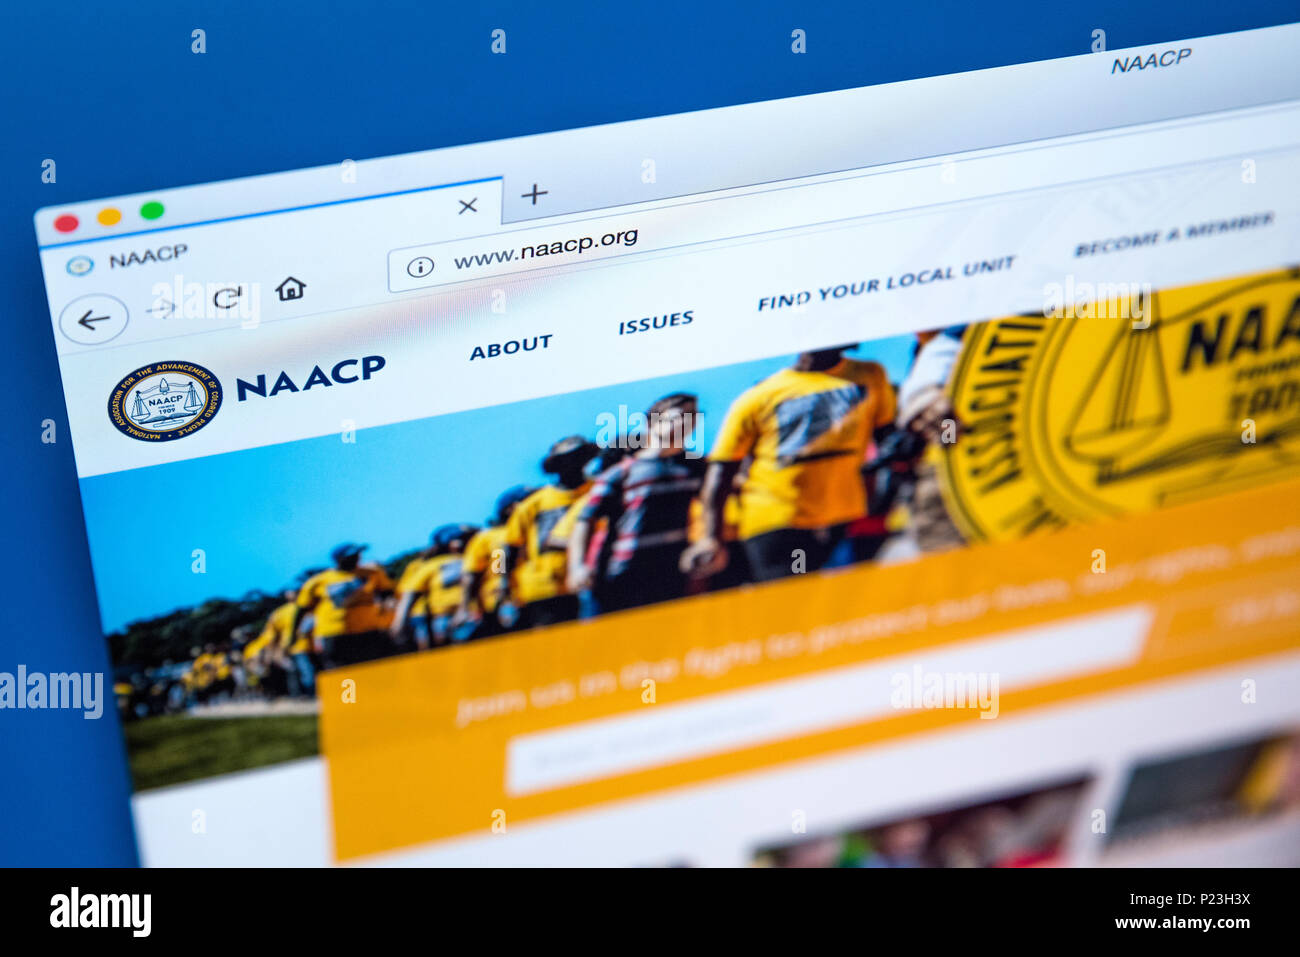 LONDON, UK - FEBRUARY 8TH 2018: The homepage of the website for the National Association for the Advancement of Colored People - the civil rights orga - Stock Image